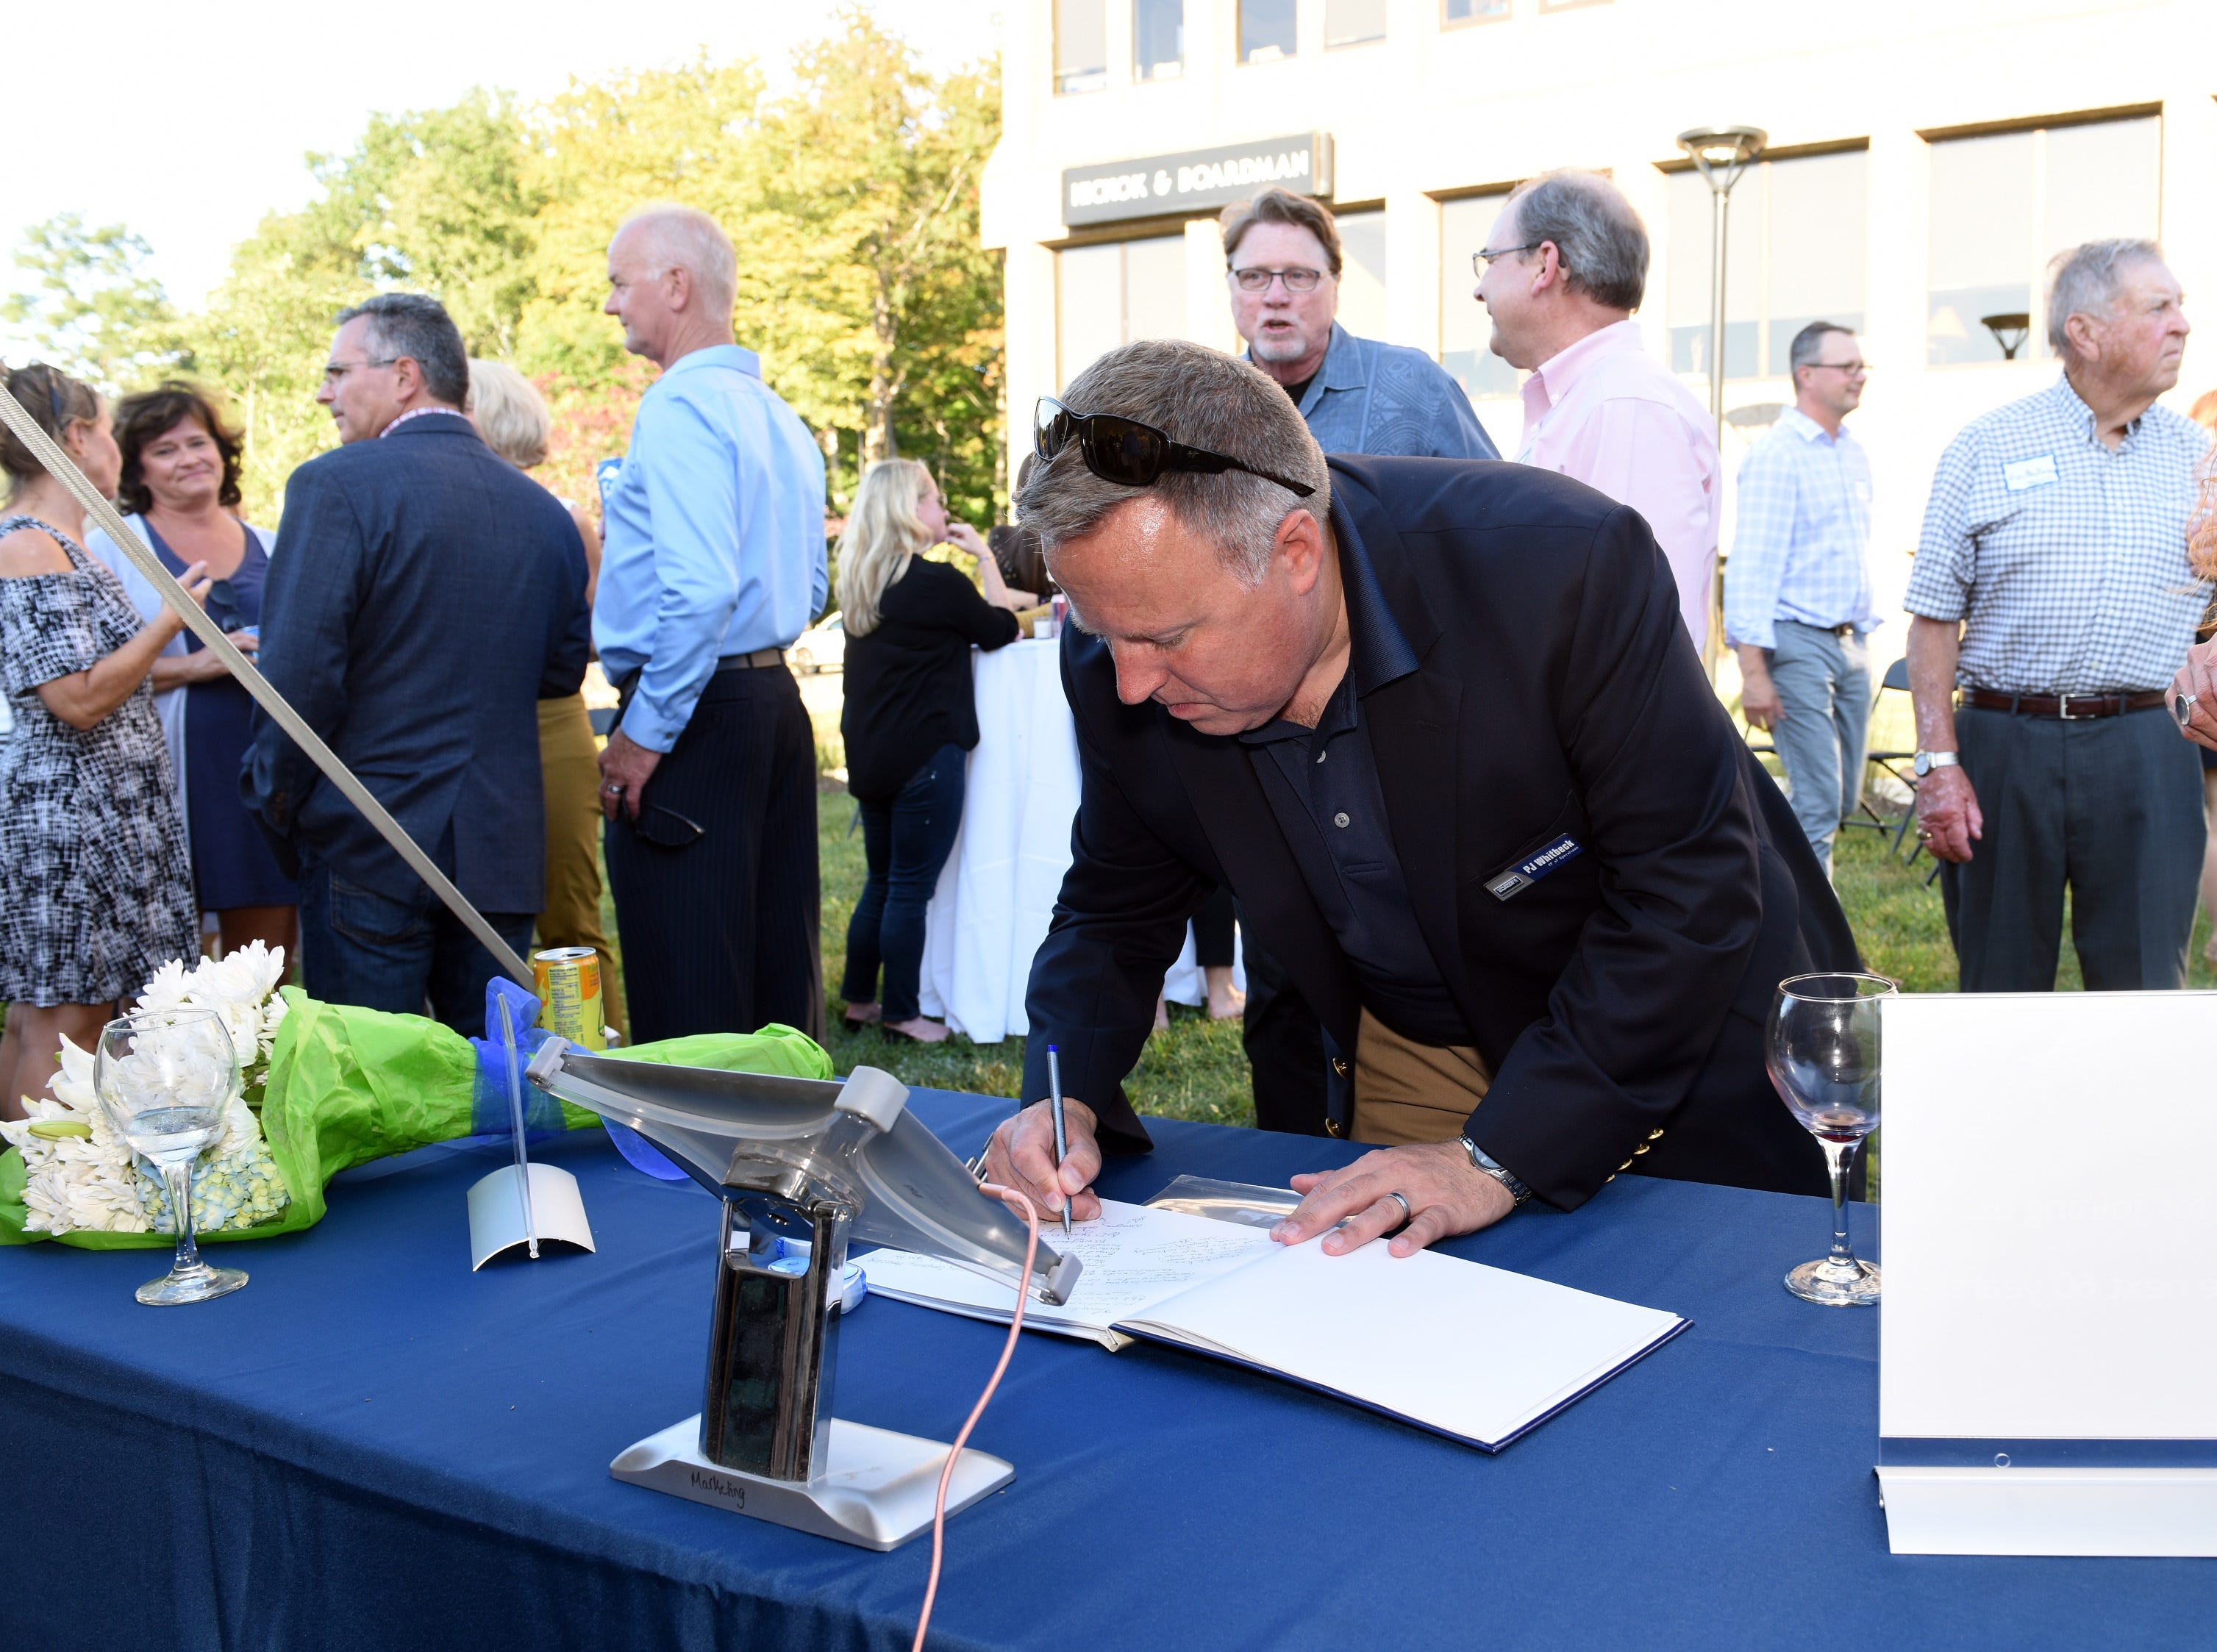 Community and Industry leaders came to celebrate the Coldwell Banker Hickok & Boardman Realty's 60th Anniversary on September 13, 2018, with current and past agents and community leaders in Burlington, VT.